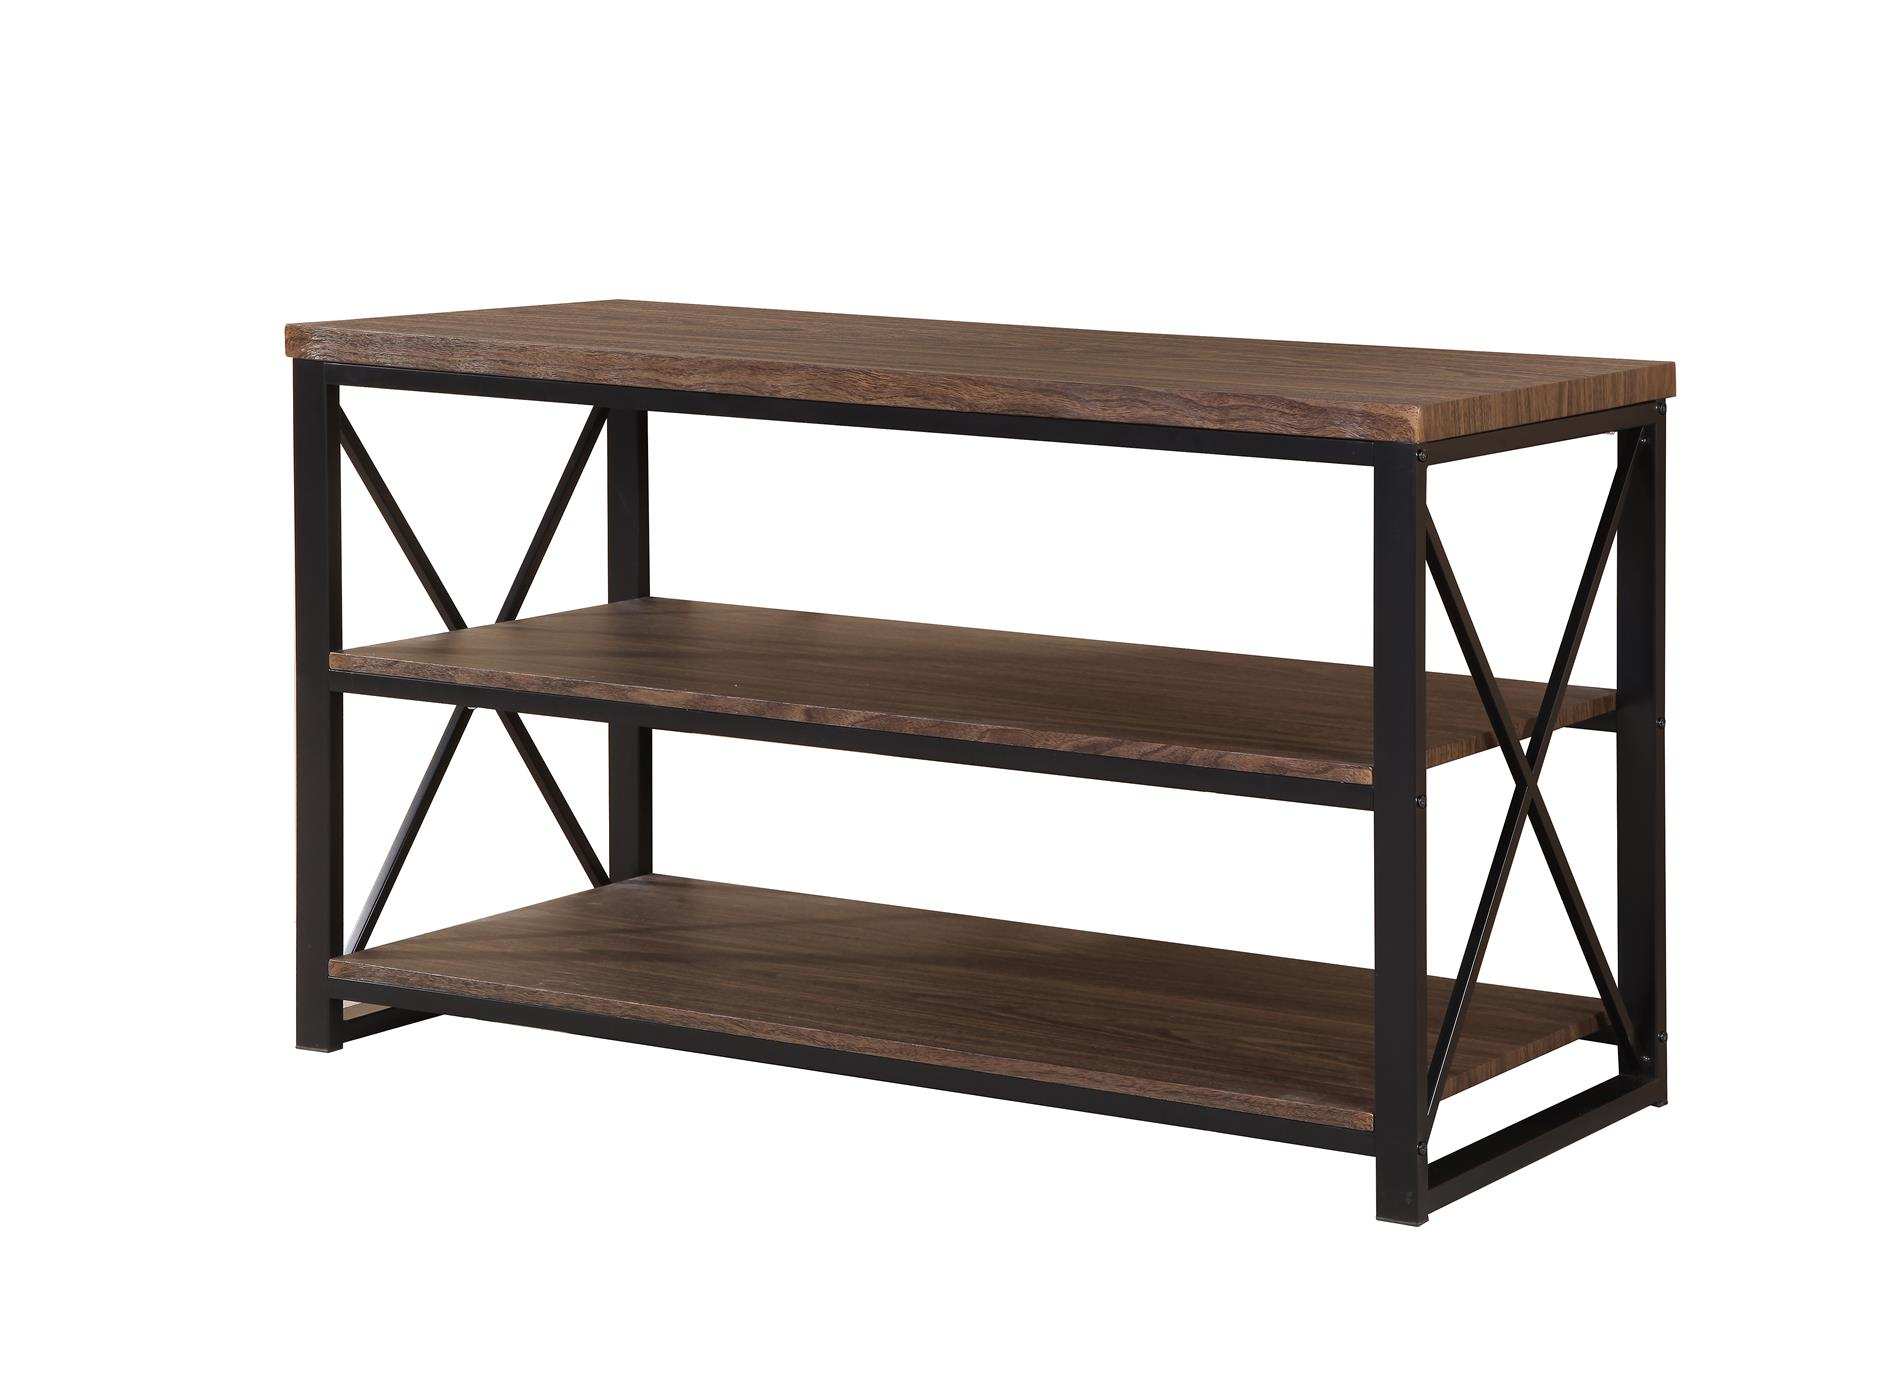 David Shaw Silverware Na Ltd Contemporary Tv Stand Metal Wood